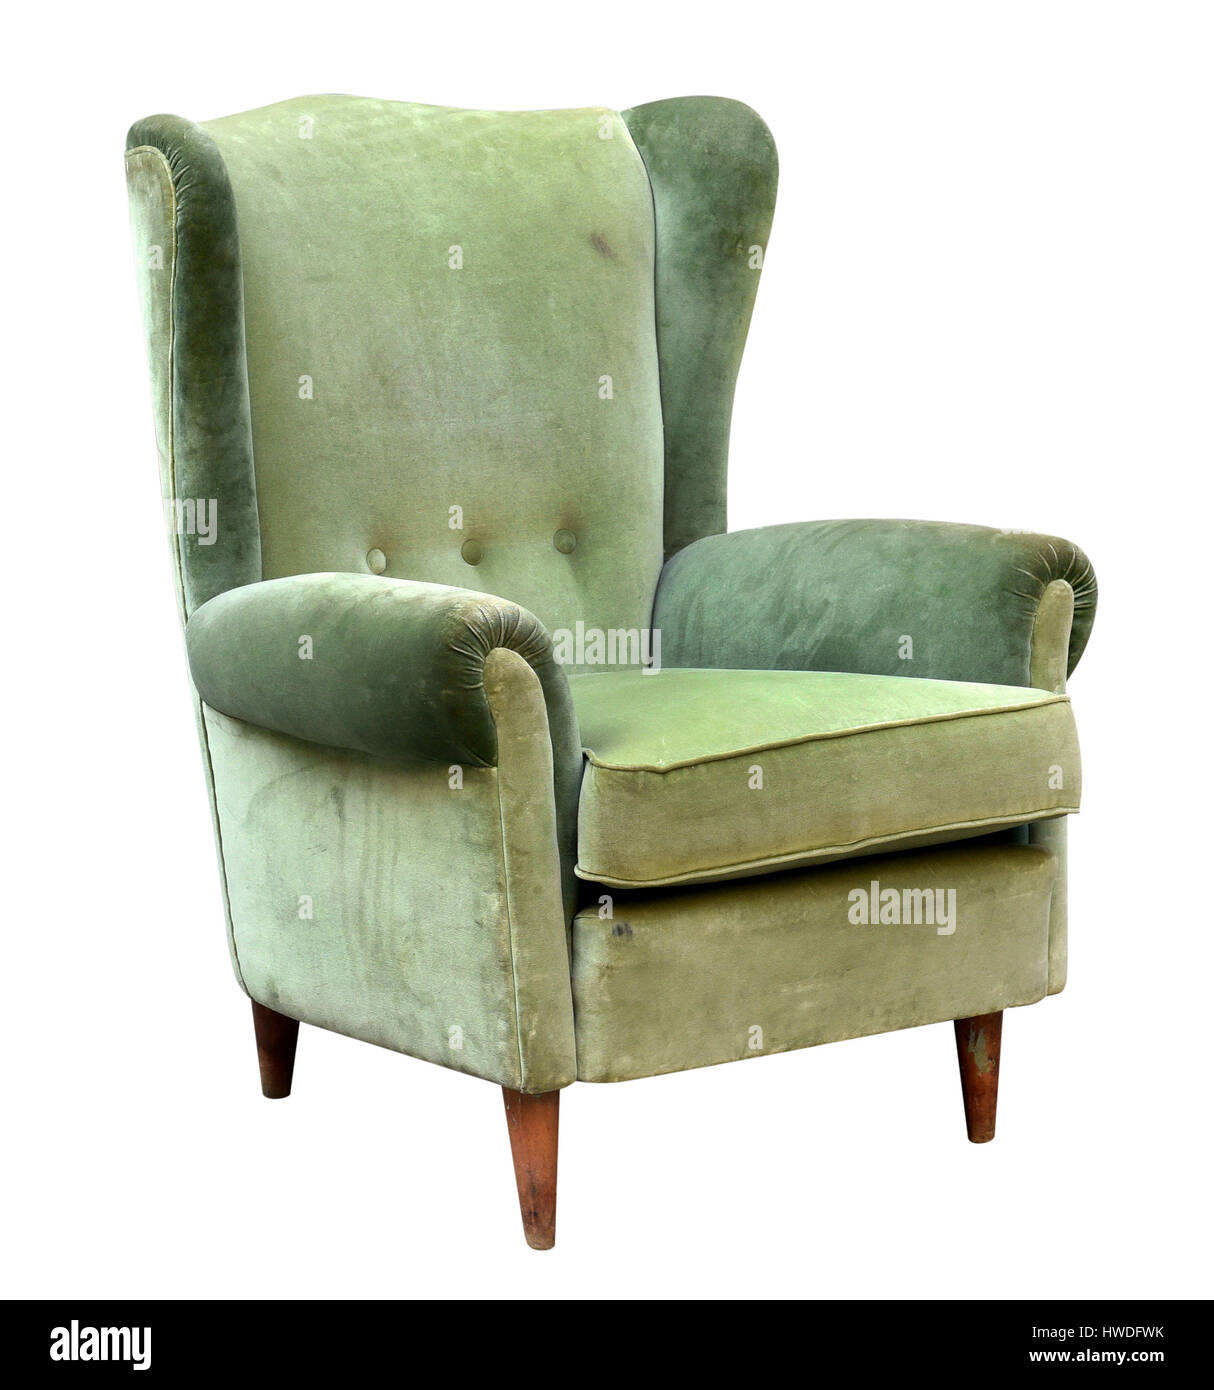 Vintage Upholstered Green Velvet Armchair With A High Wing Back Stock Photo Alamy